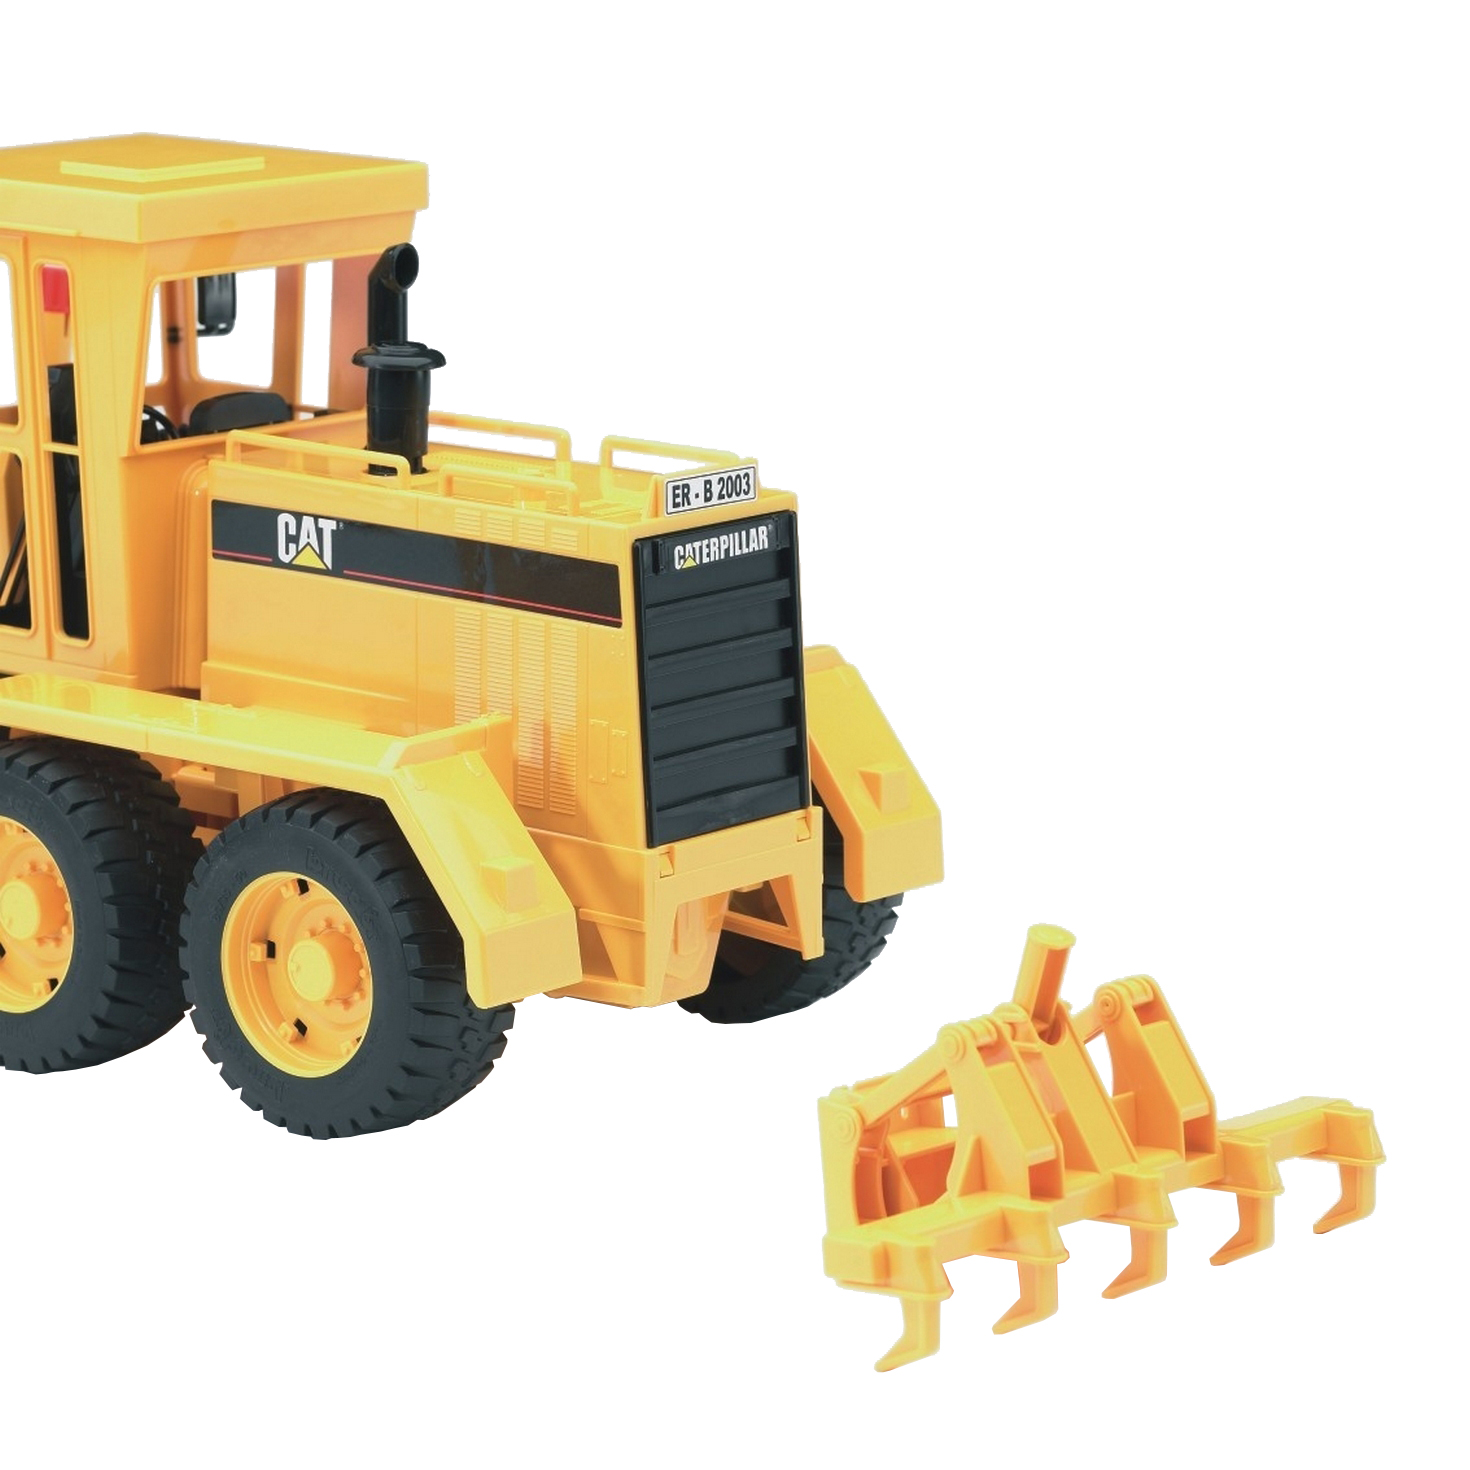 Cat Construction Toys For Boys : Bruder toys scale model construction vehicle